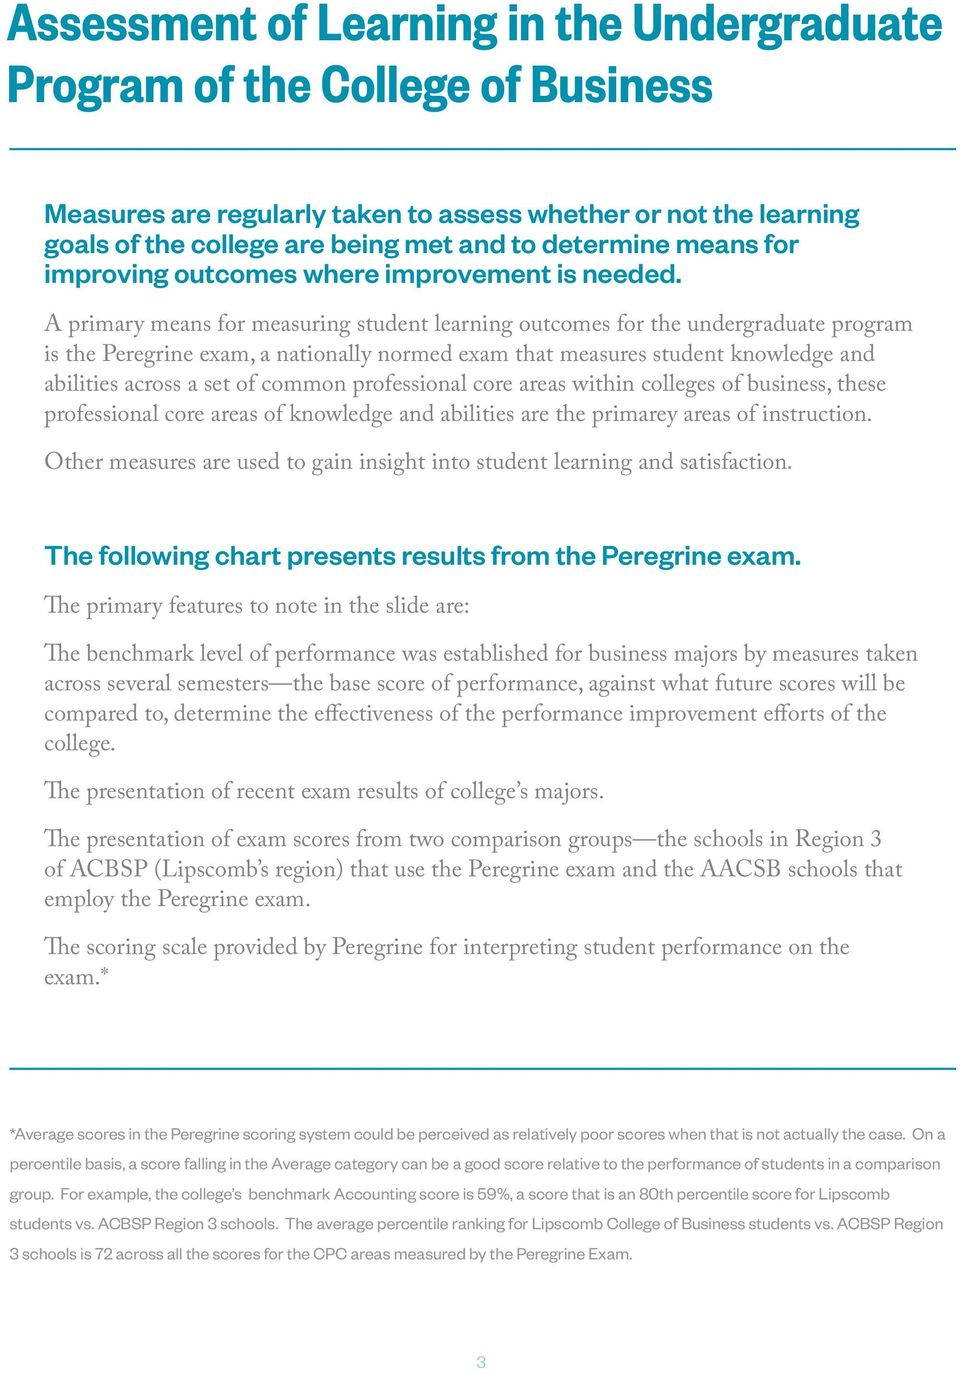 A primary means for measuring student learning outcomes for the undergraduate program is the Peregrine exam, a nationally normed exam that measures student knowledge and abilities across a set of